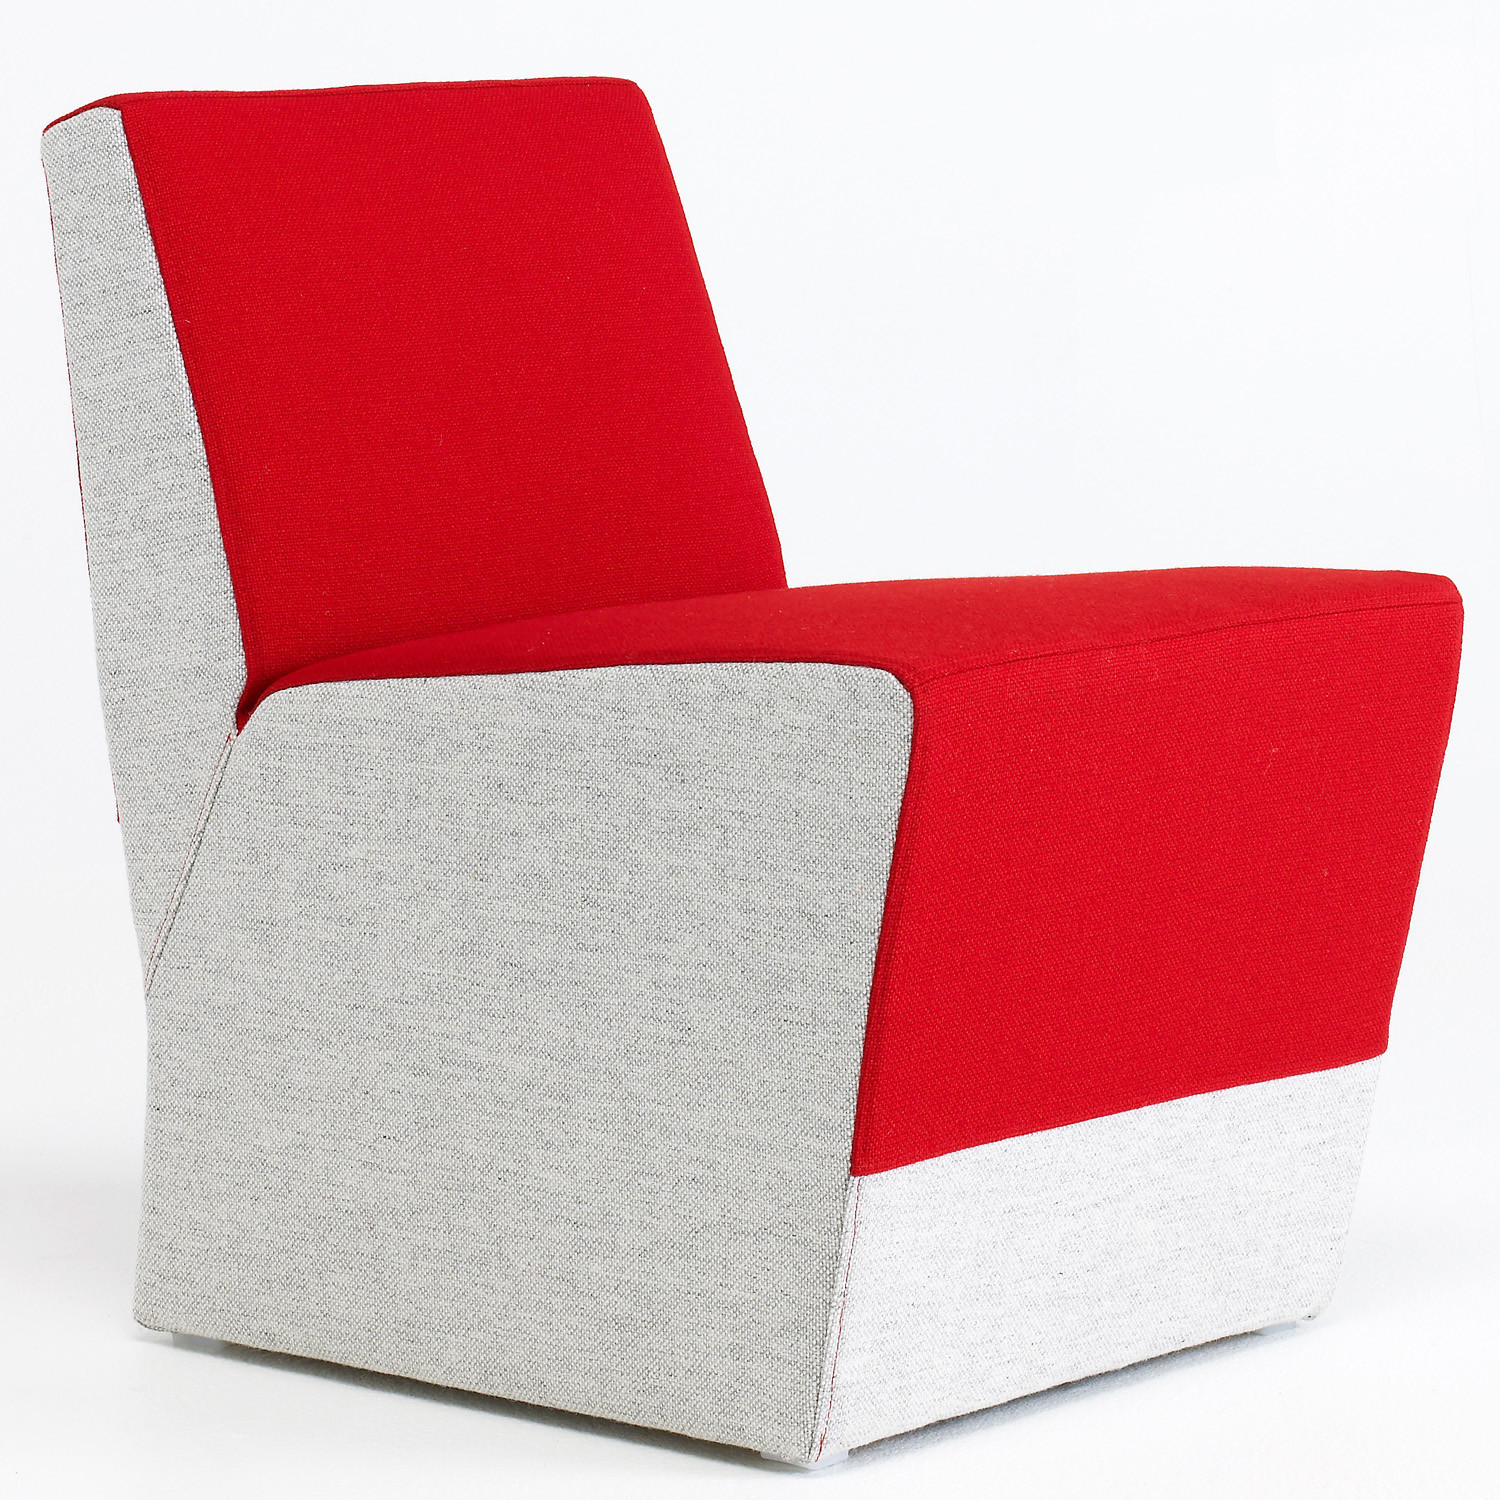 King Acoustic Armchair by Offecct